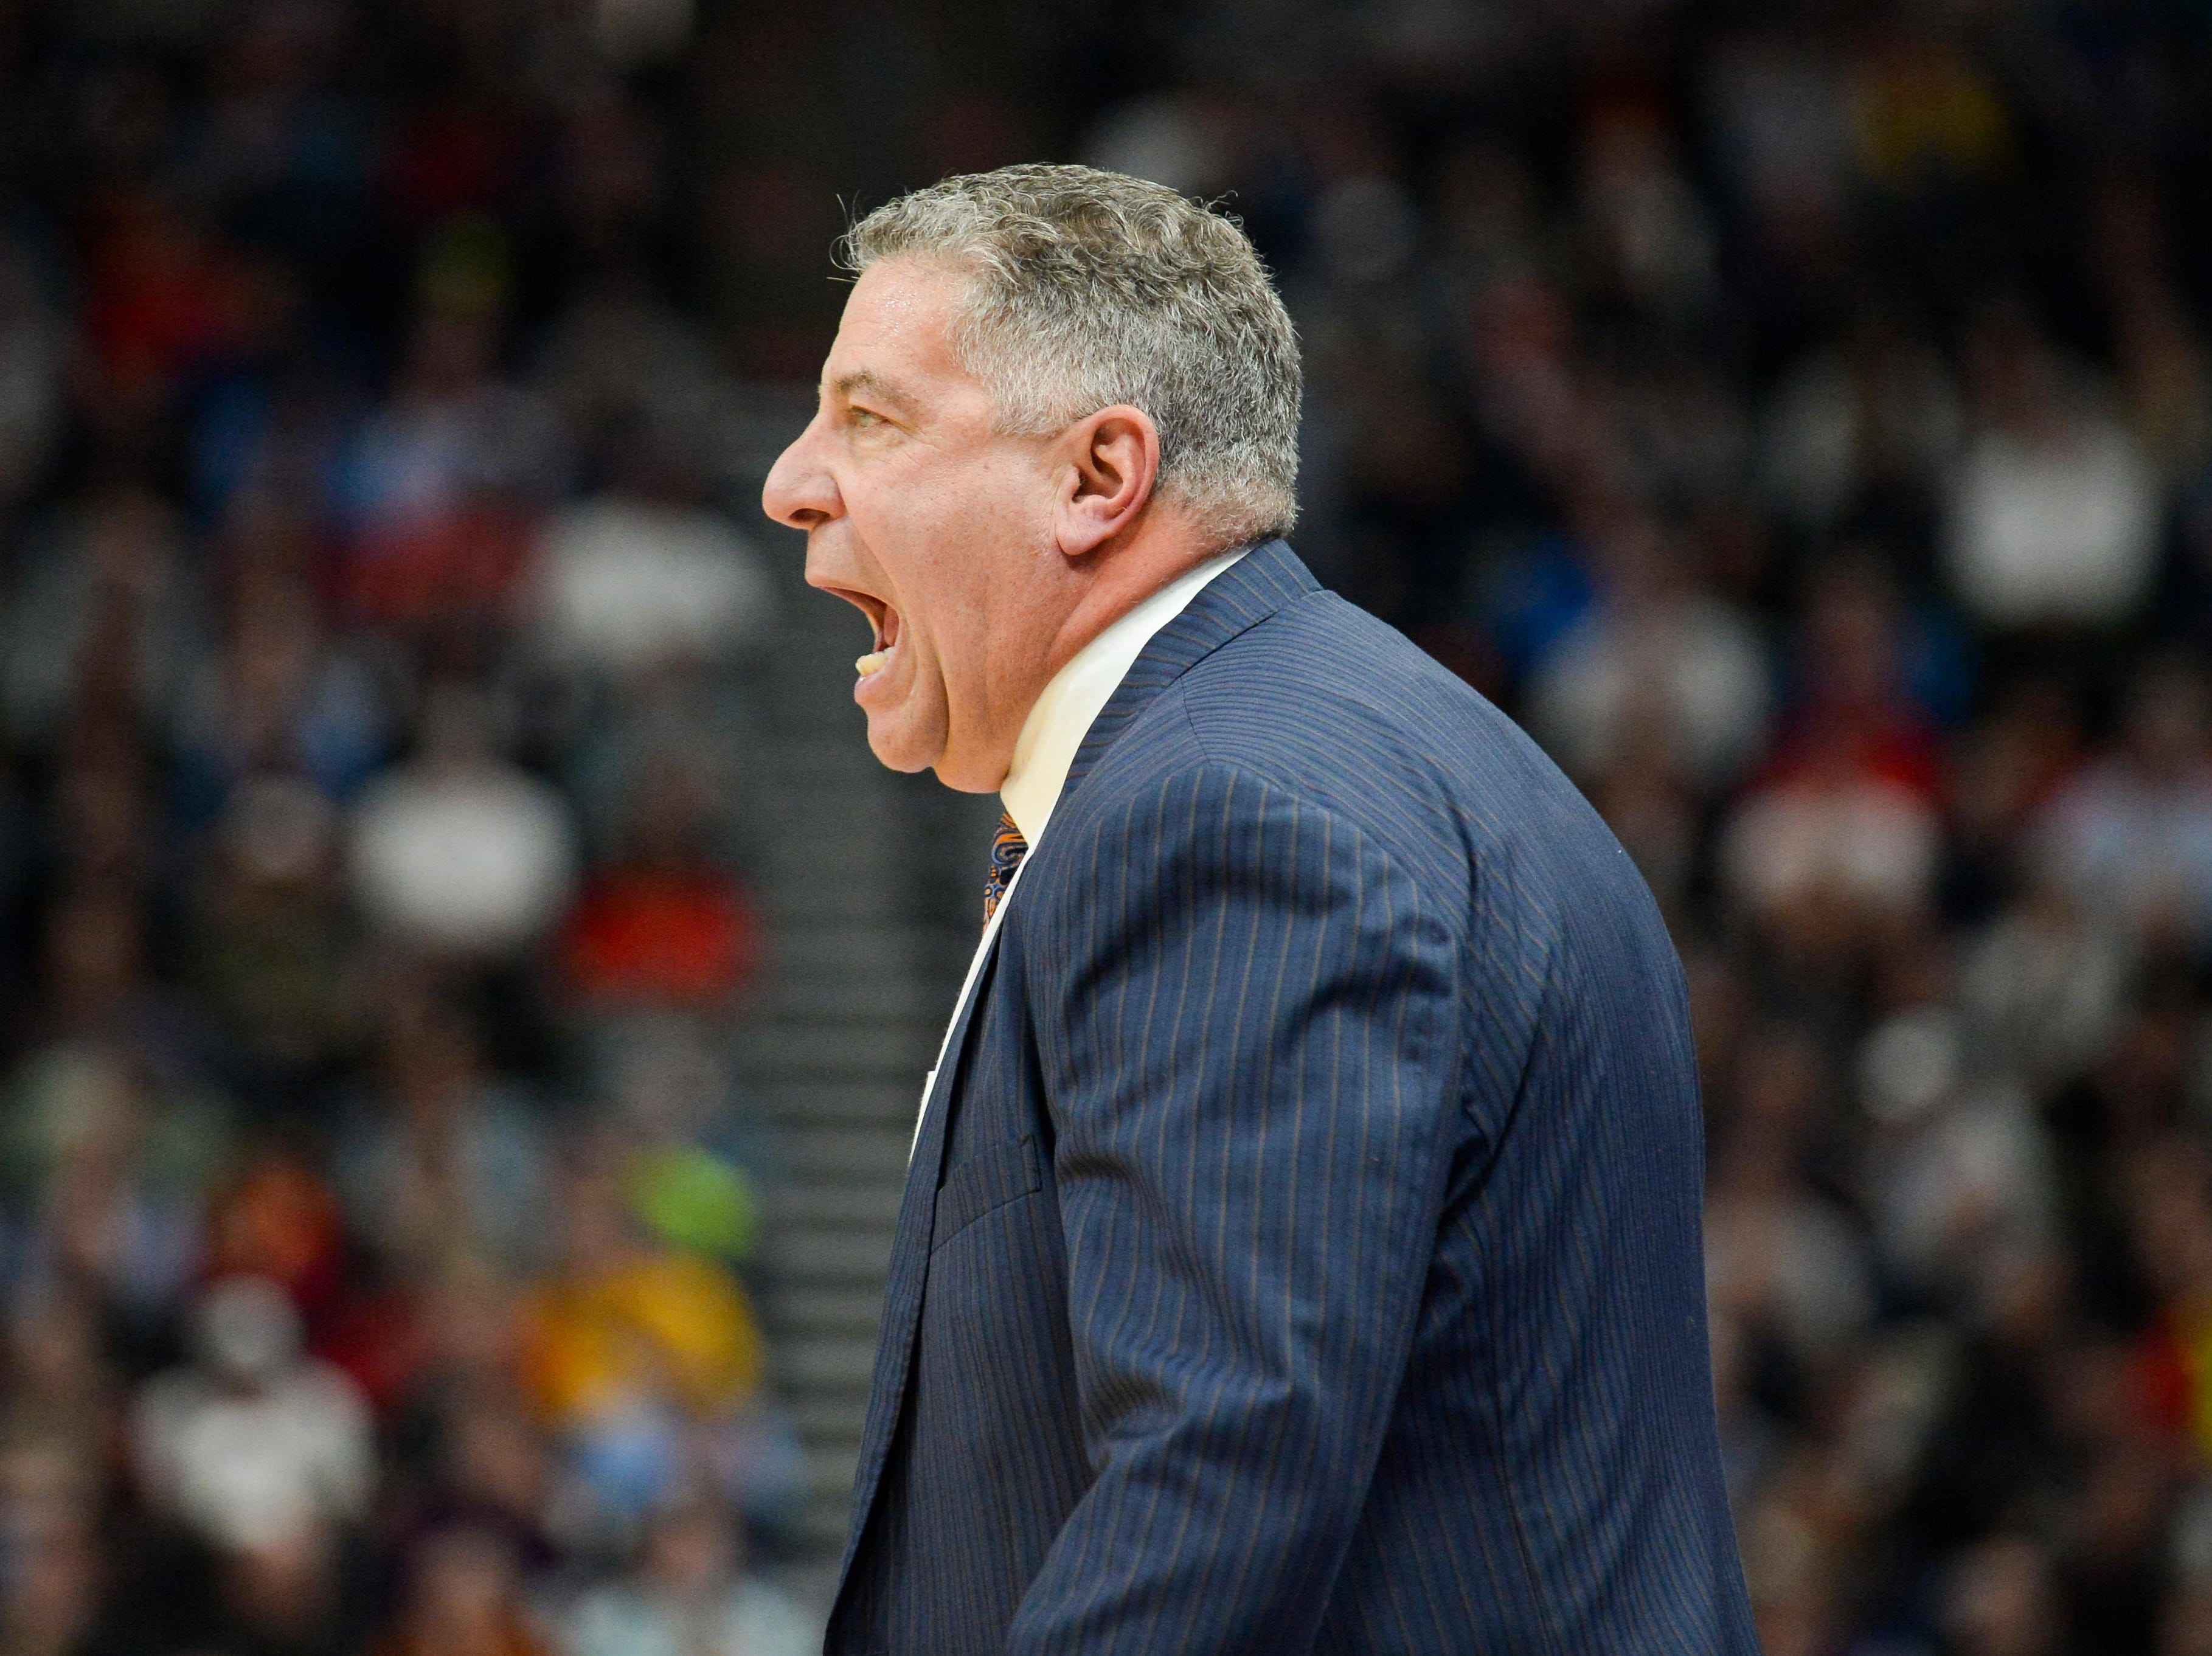 Mar 21, 2019; Salt Lake City, UT, USA; Auburn Tigers head coach Bruce Pearl reacts during the first half in the first round of the 2019 NCAA Tournament against the New Mexico State Aggies at Vivint Smart Home Arena. Mandatory Credit: Gary A. Vasquez-USA TODAY Sports